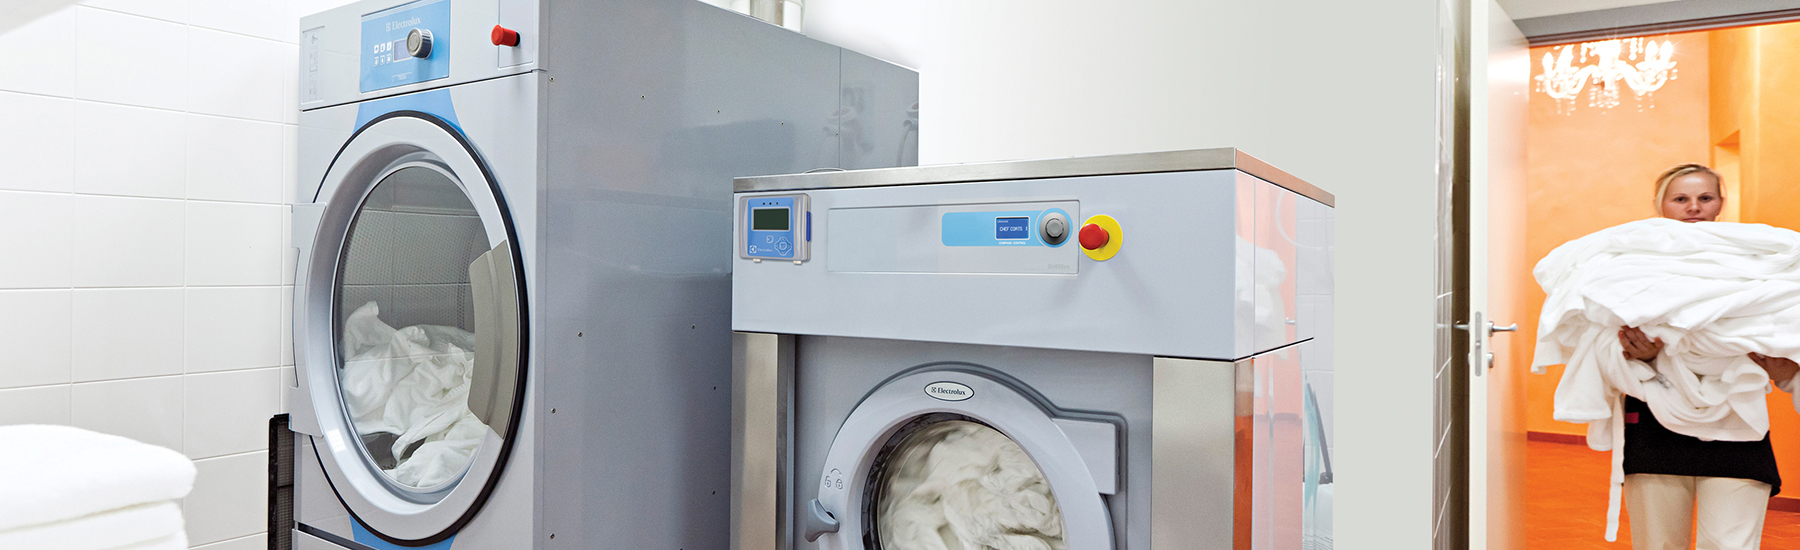 Equipment OPL On-Premise Laundry BDS Laundry